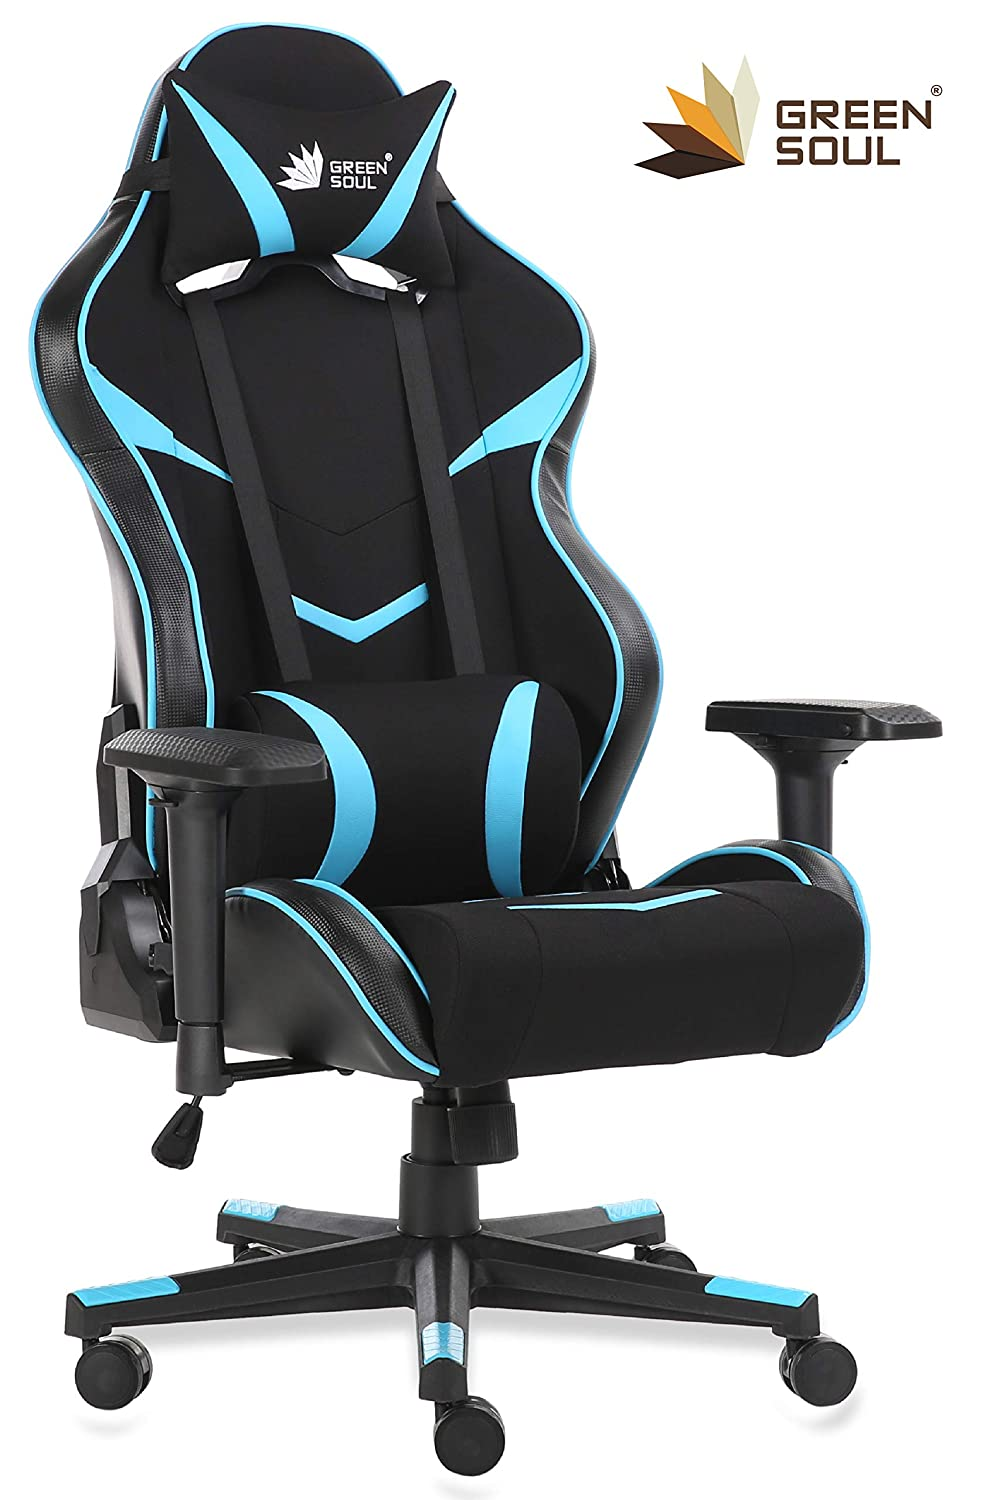 GreenSoul Monster Series Gaming/Ergonomic Chair in Fabric